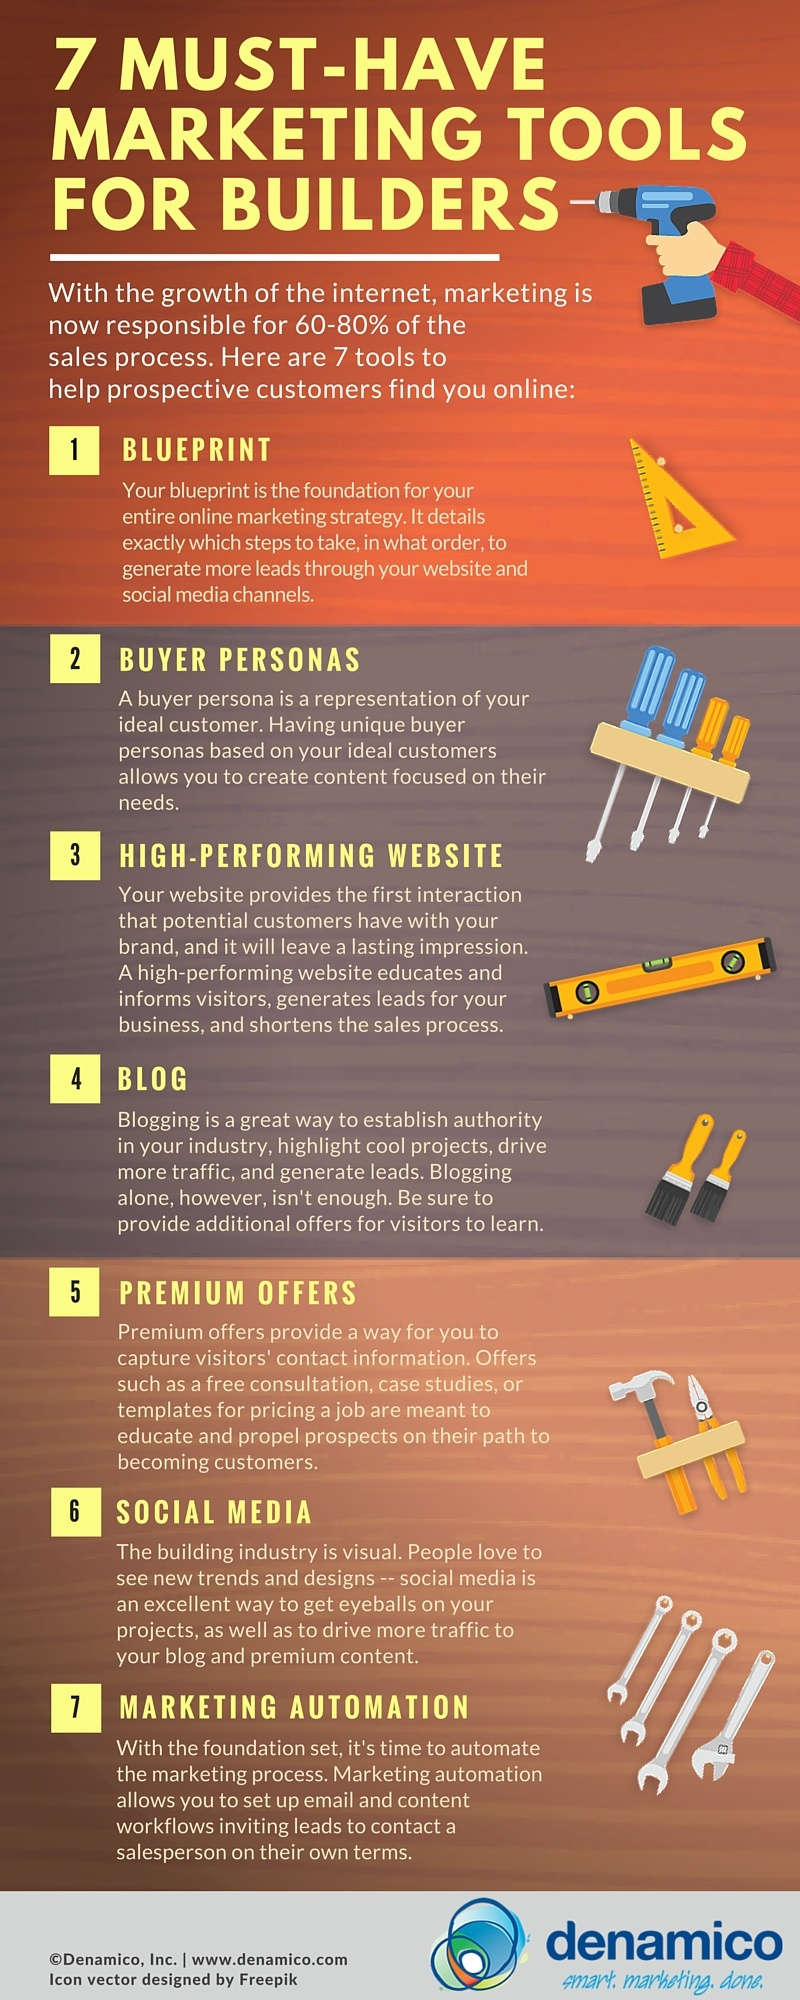 7_must_have_marketing_tools_for_builders_infographic